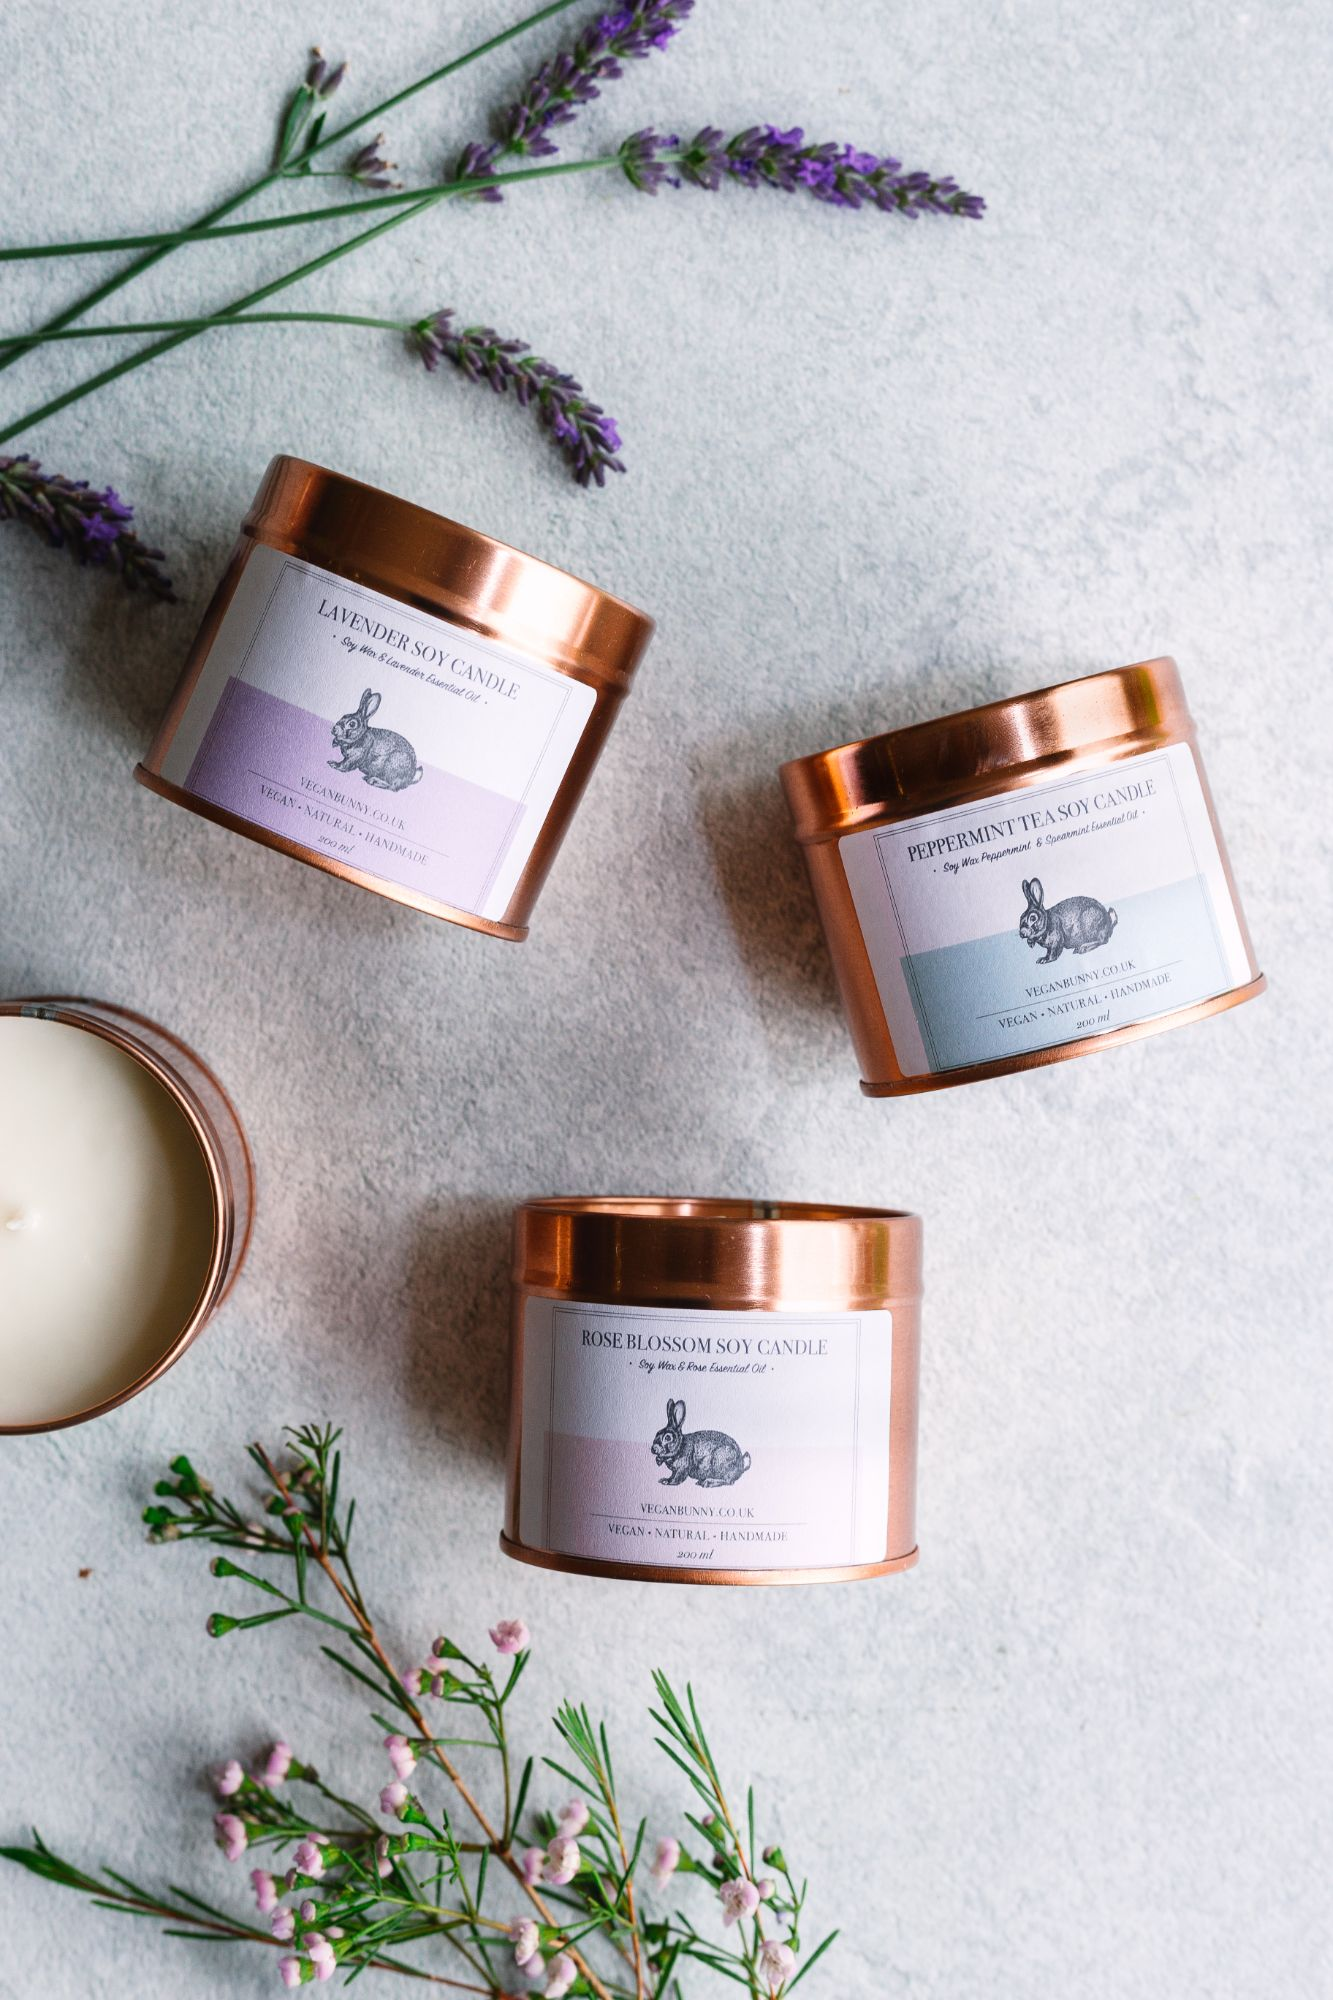 Limited offer - vegan bunny candle